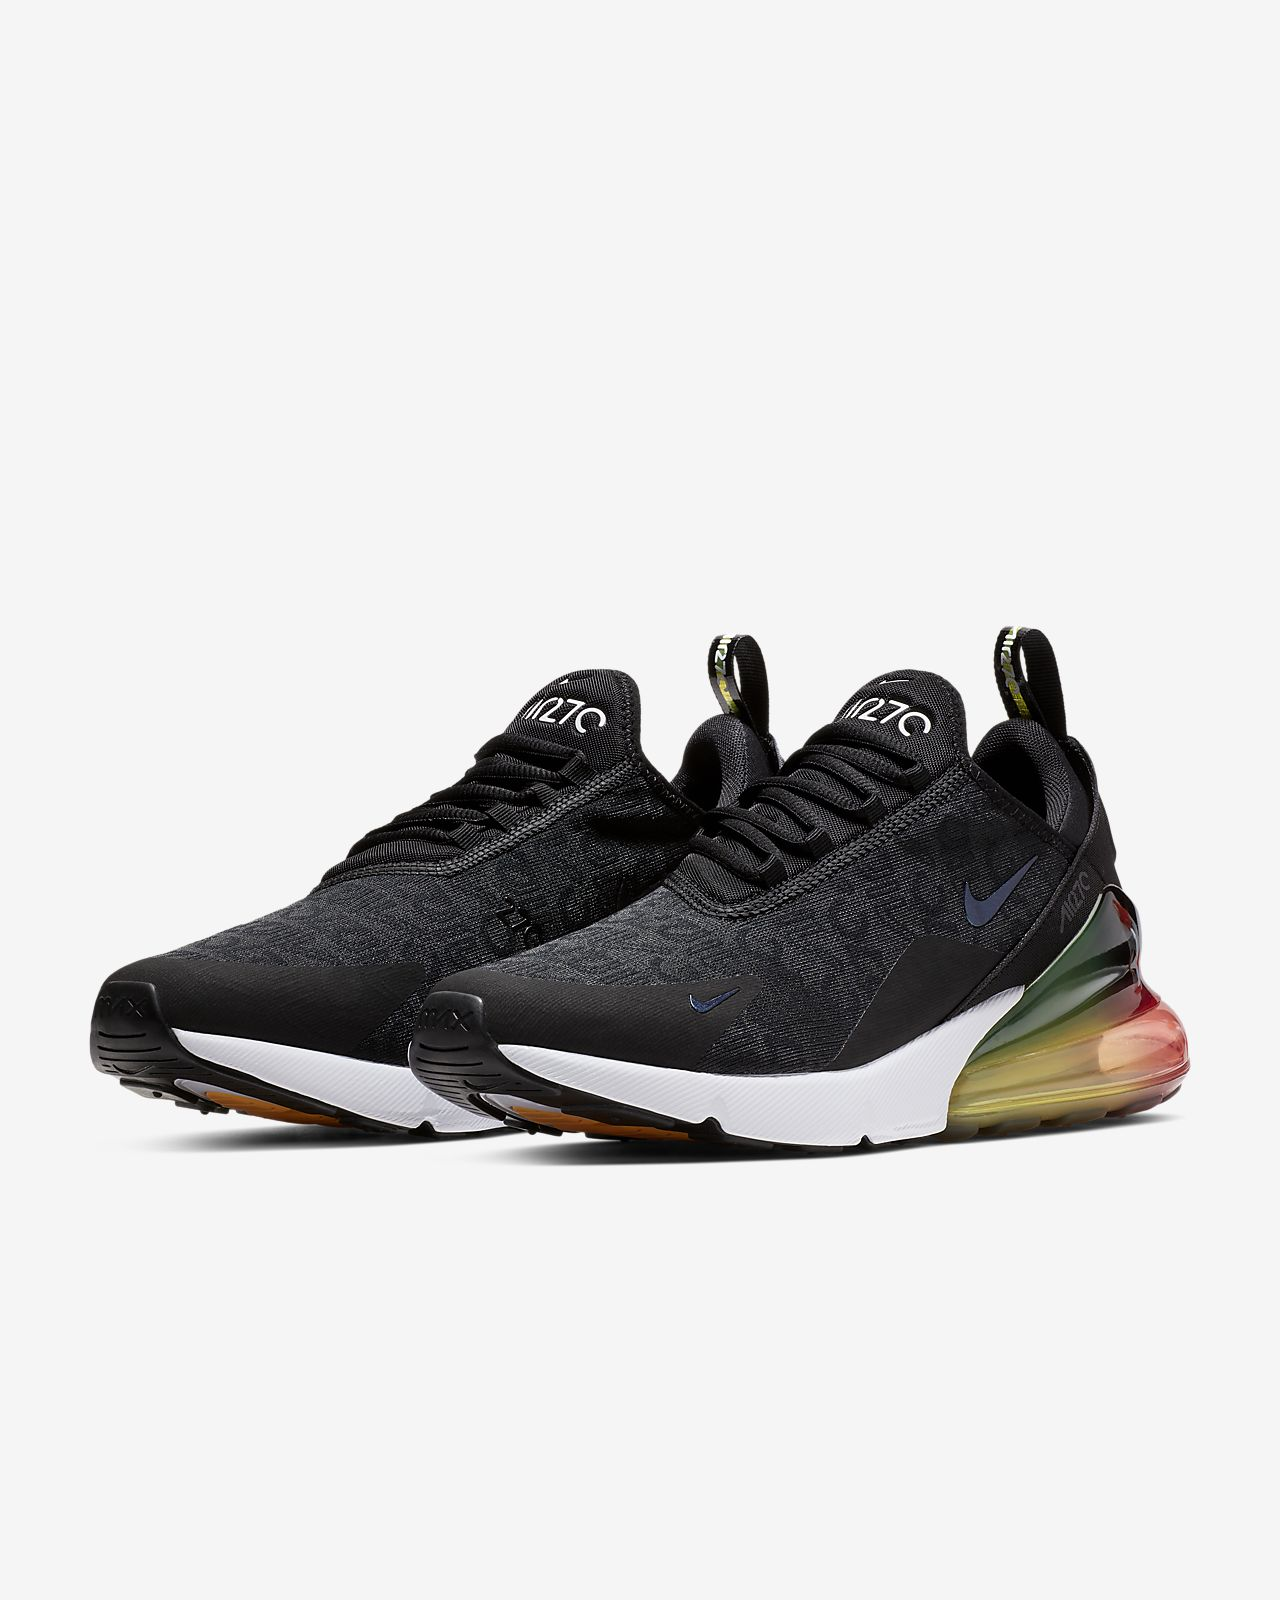 reputable site 567ff 8f3c3 ... Chaussure Nike Air Max 270 SE pour Homme